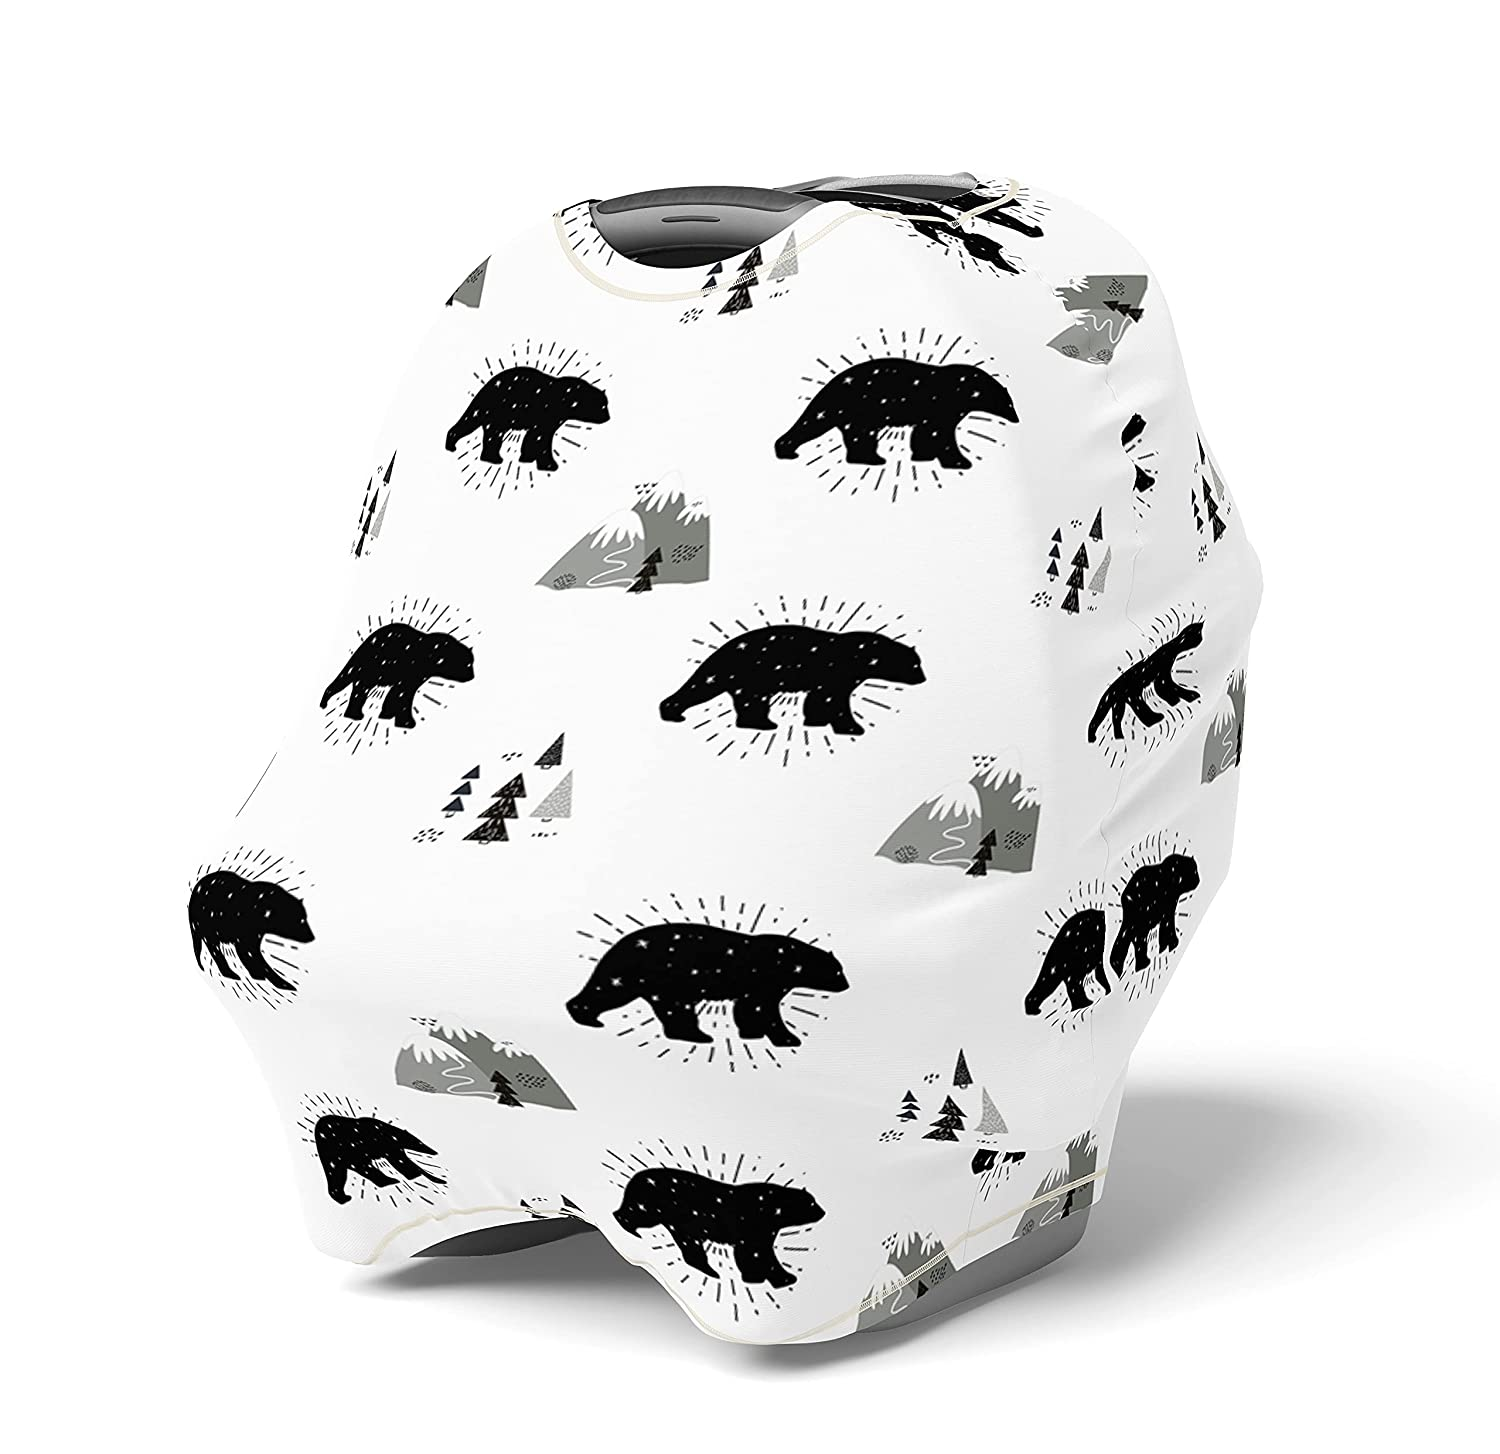 Stretchy Multi Use Cover Car Seat Canopy Woodland Bears Nursing Cover Shopping Cart Baby Cover